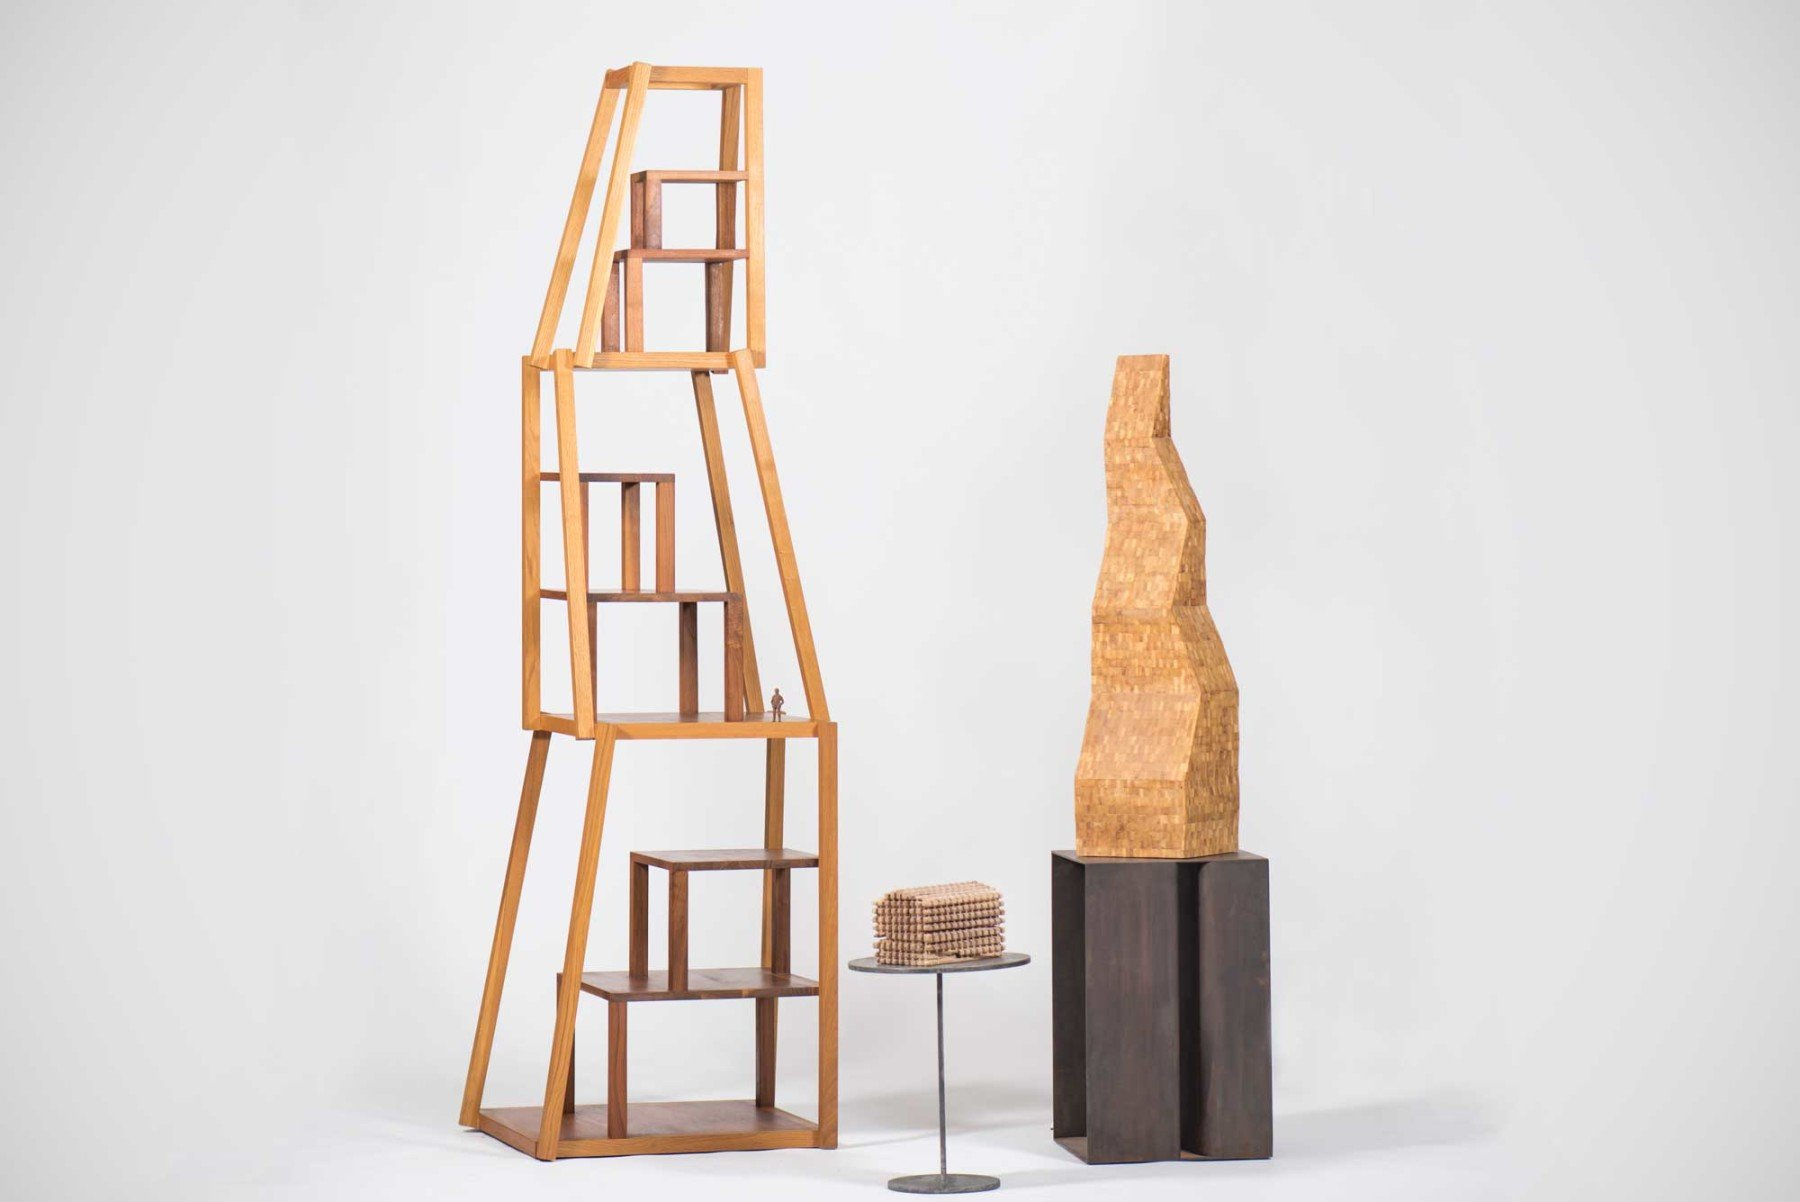 Michele de Lucchi |   Torre T4 - decorative object, sculpture